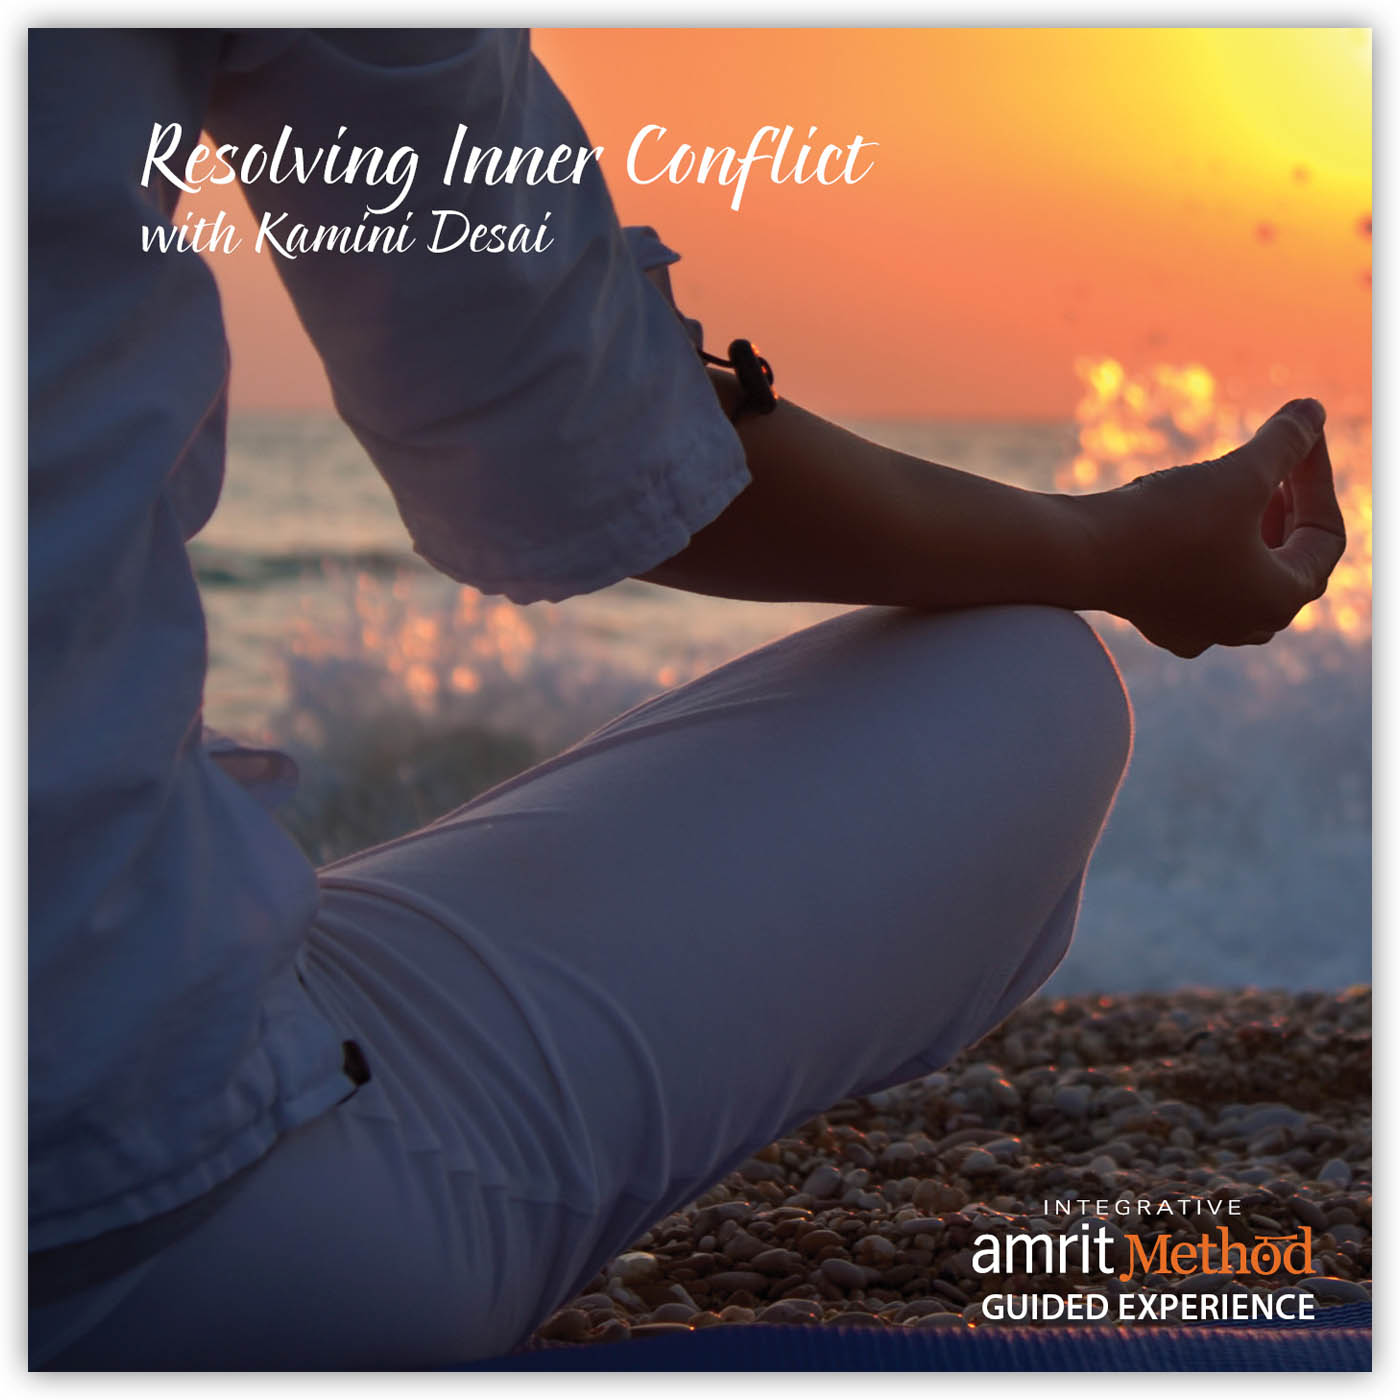 Lecture and Guided Experience – Resolving Inner Conflict with Kamini Desai PhD